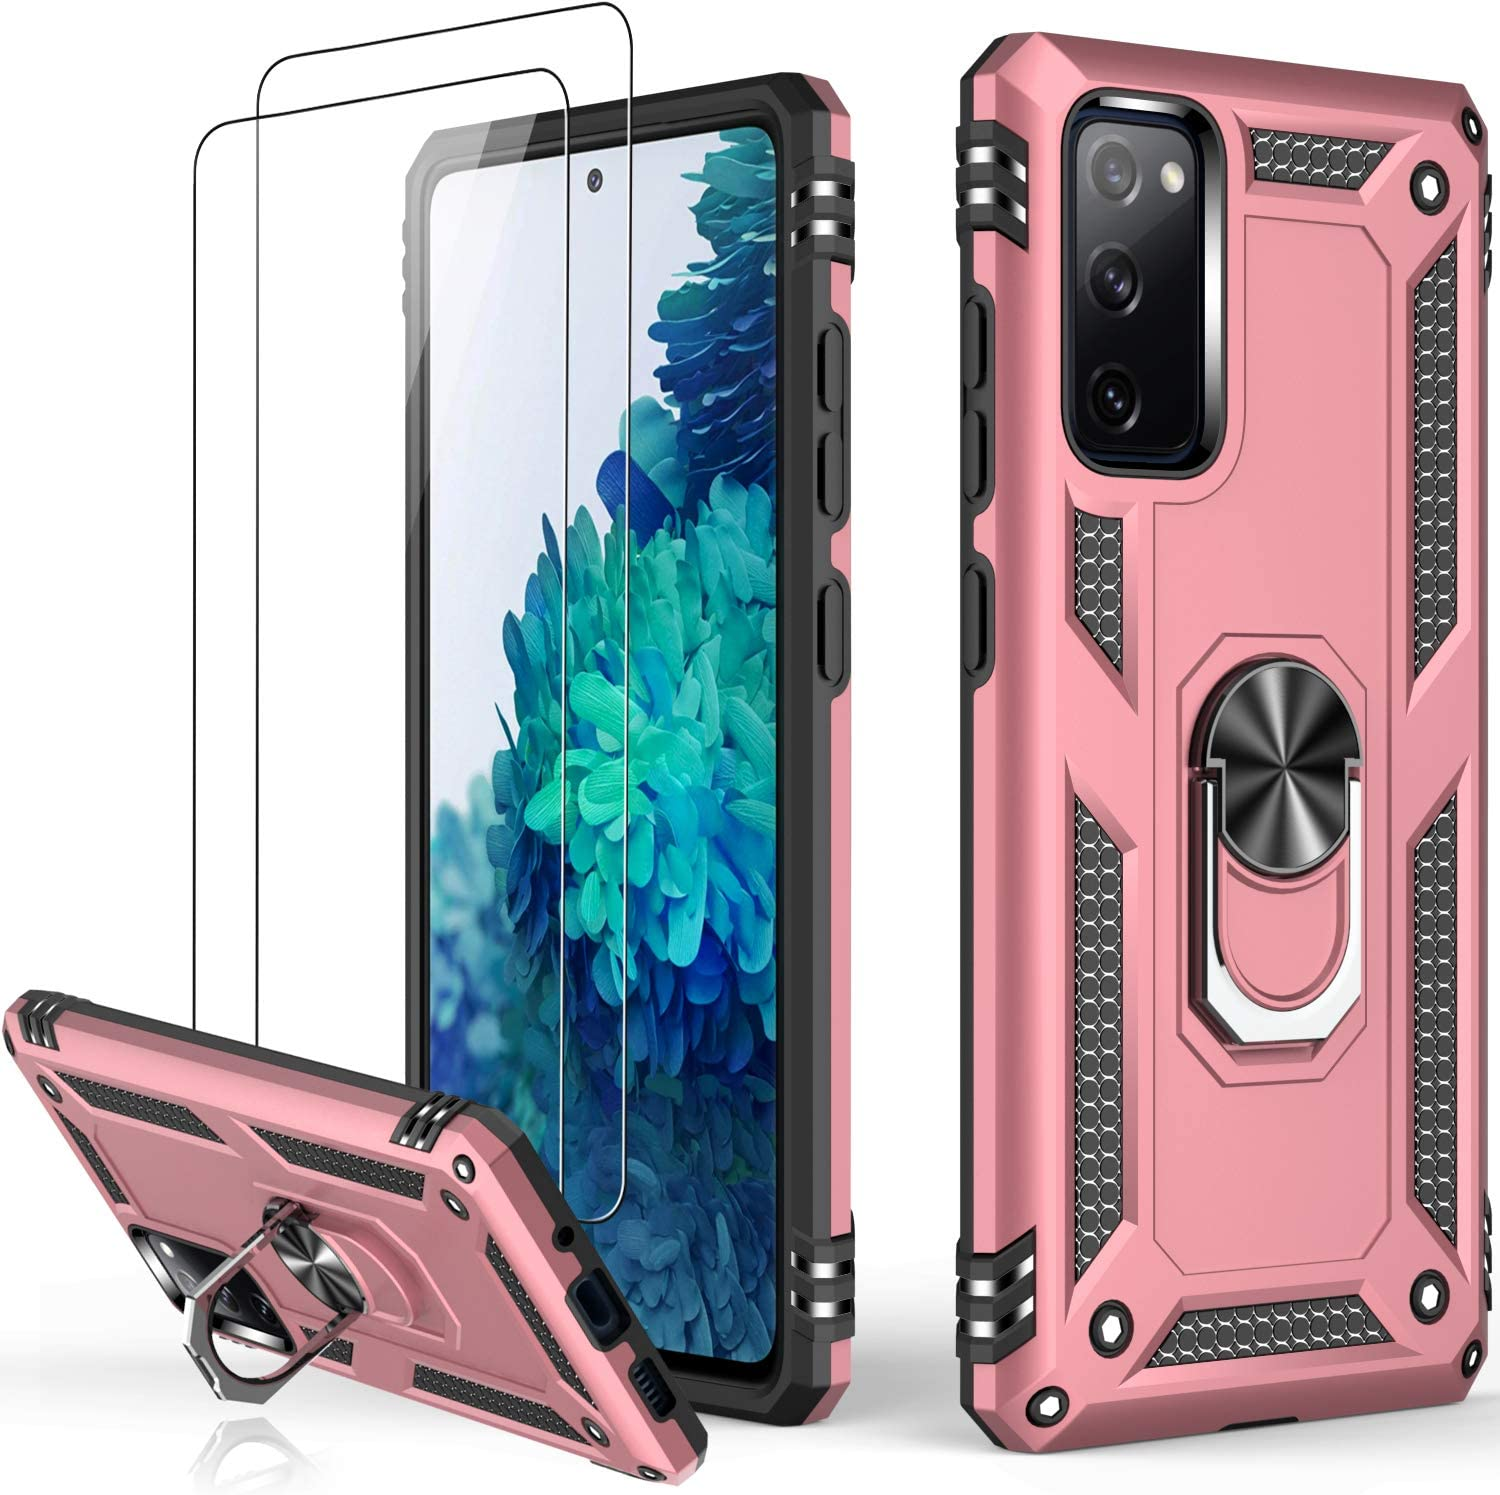 LUMARKE Samsung S20 FE Case with Screen Protector,Pass 16ft Drop Test Military Grade Heavy Duty Cover with Magnetic Kickstand for Car Mount,Protective Phone Case for Samsung Galaxy S20 FE Rose Gold